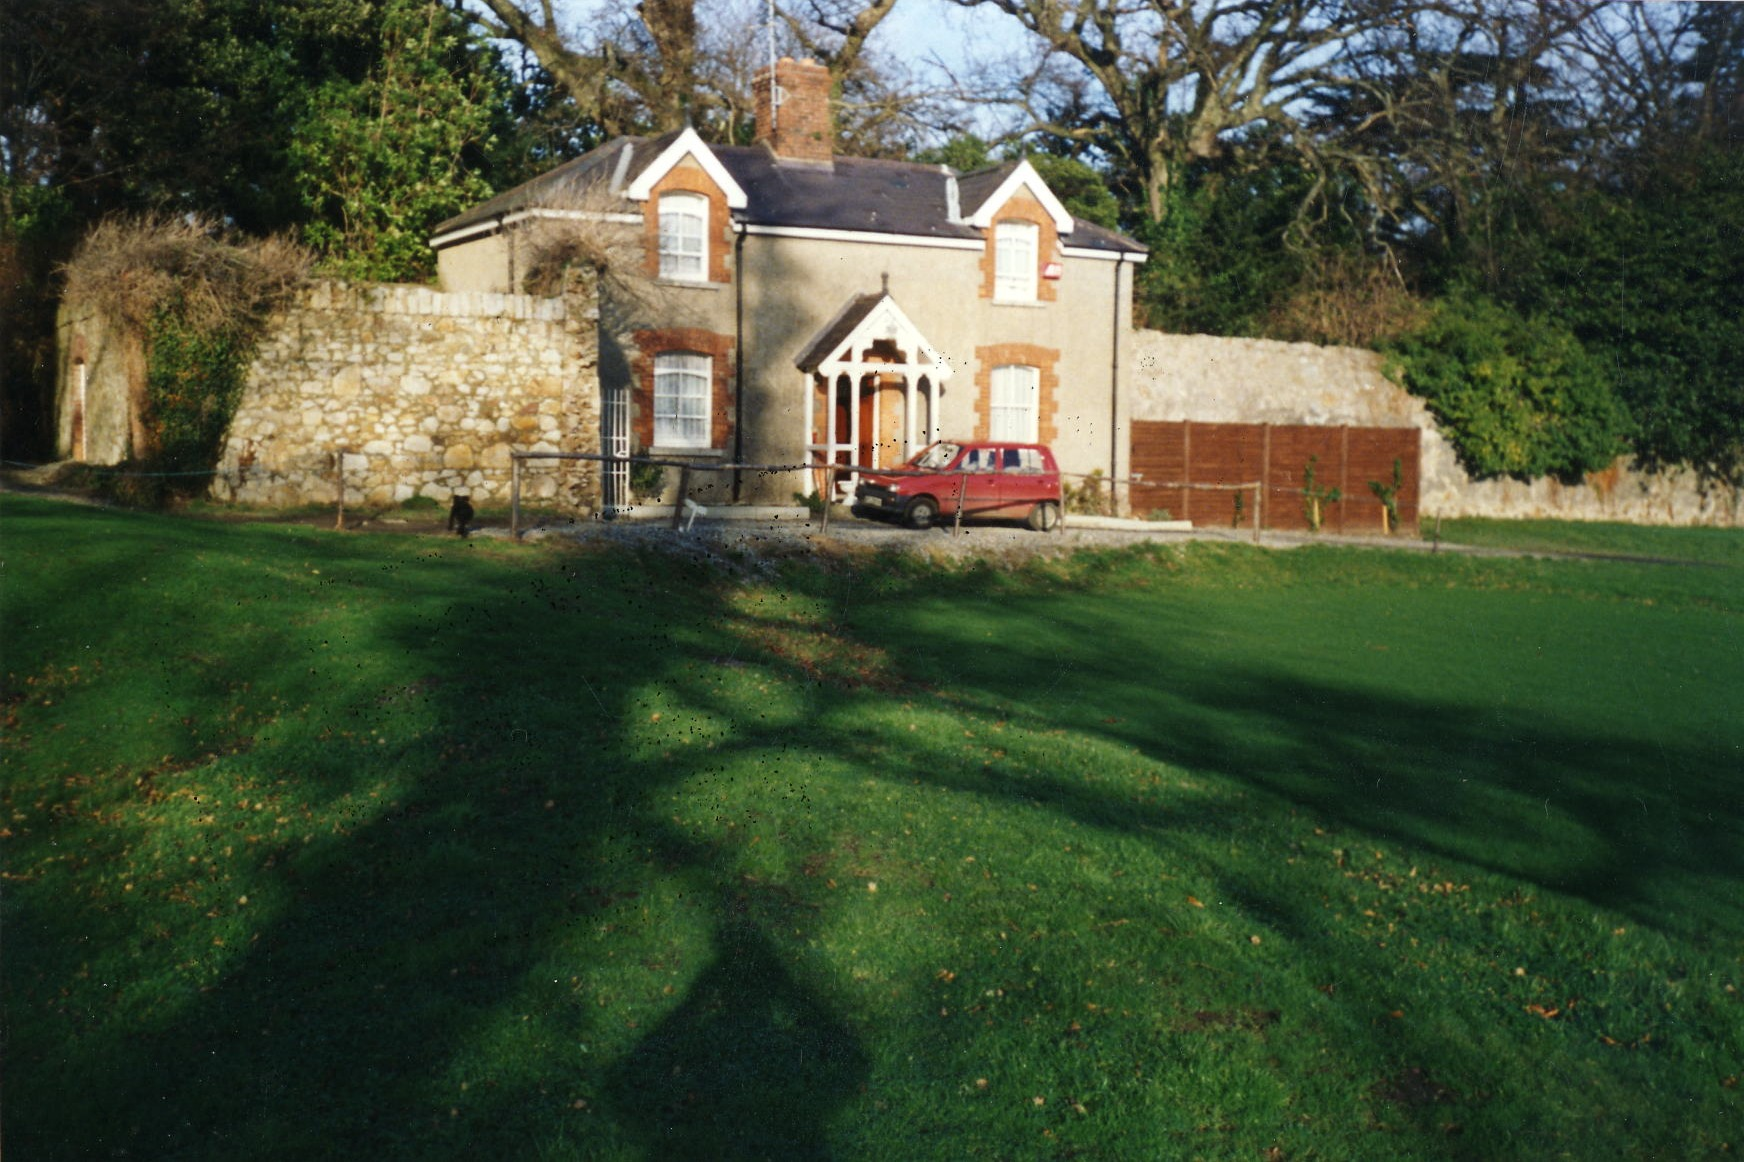 The Cottage - lived in for a number of years after the Club opened in 1987